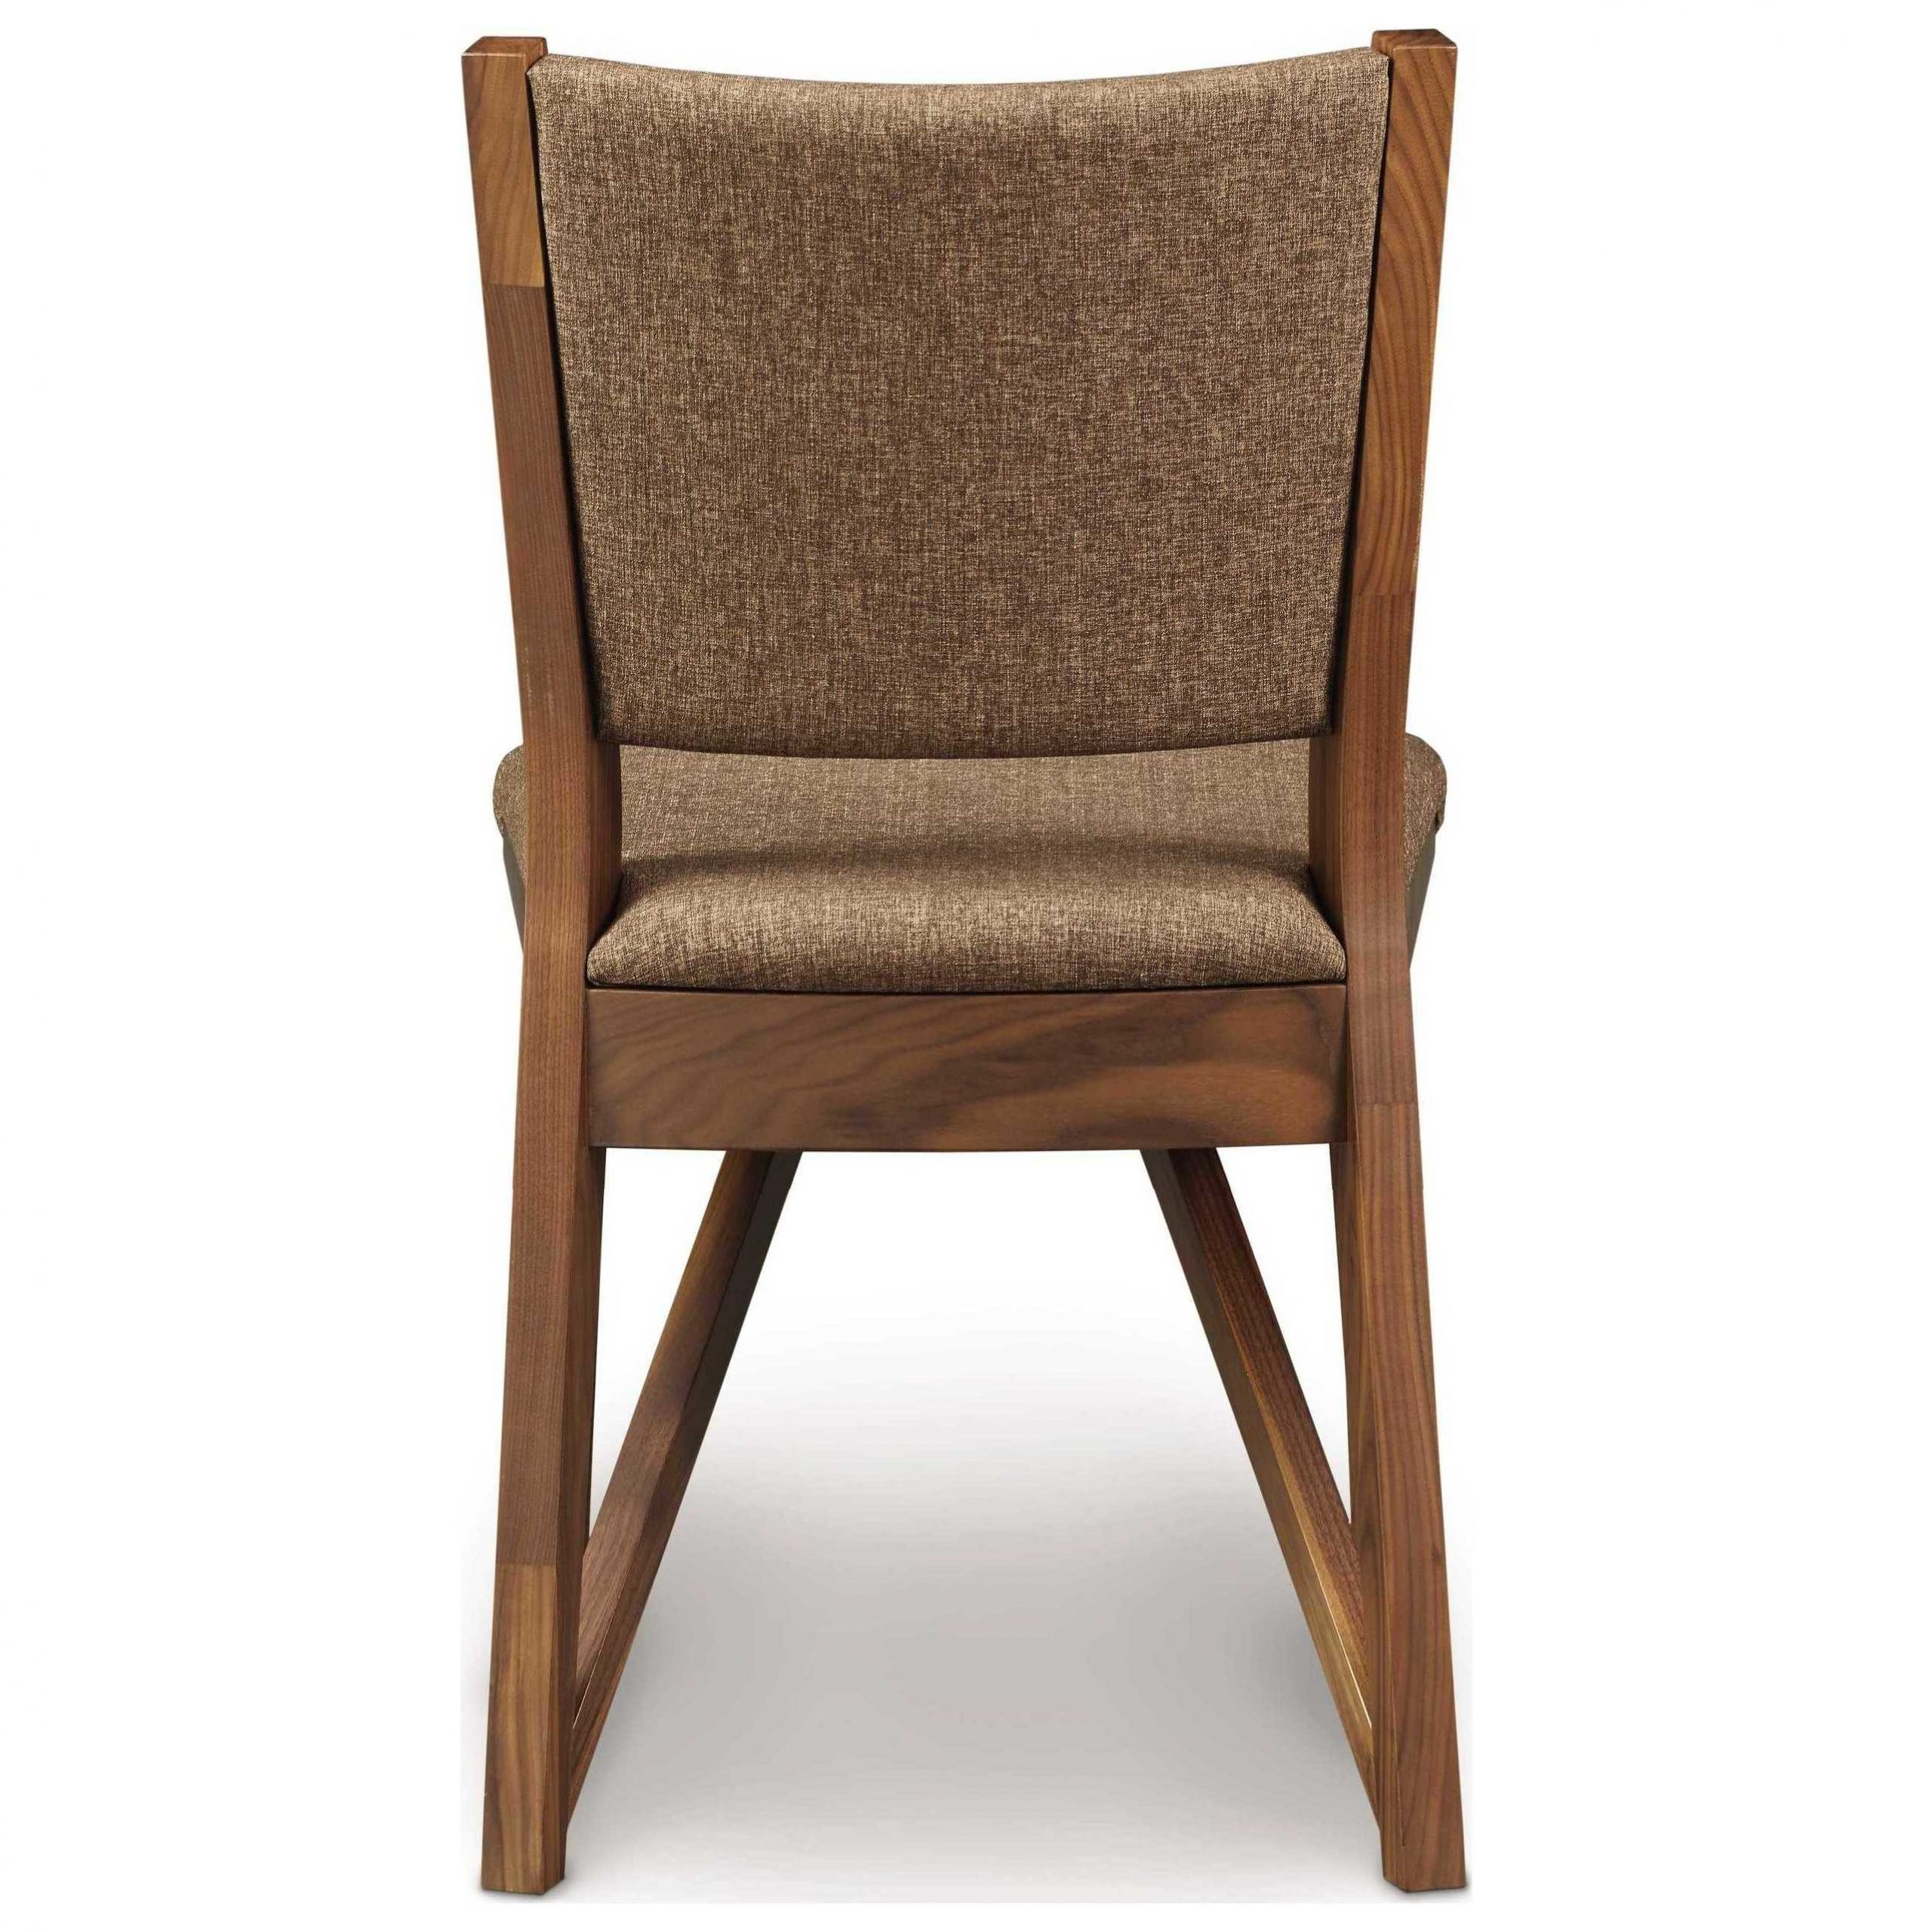 Preferred Exeter Side Chairs With Regard To Copeland Furniture Exeter Dining Side Chair (View 4 of 20)